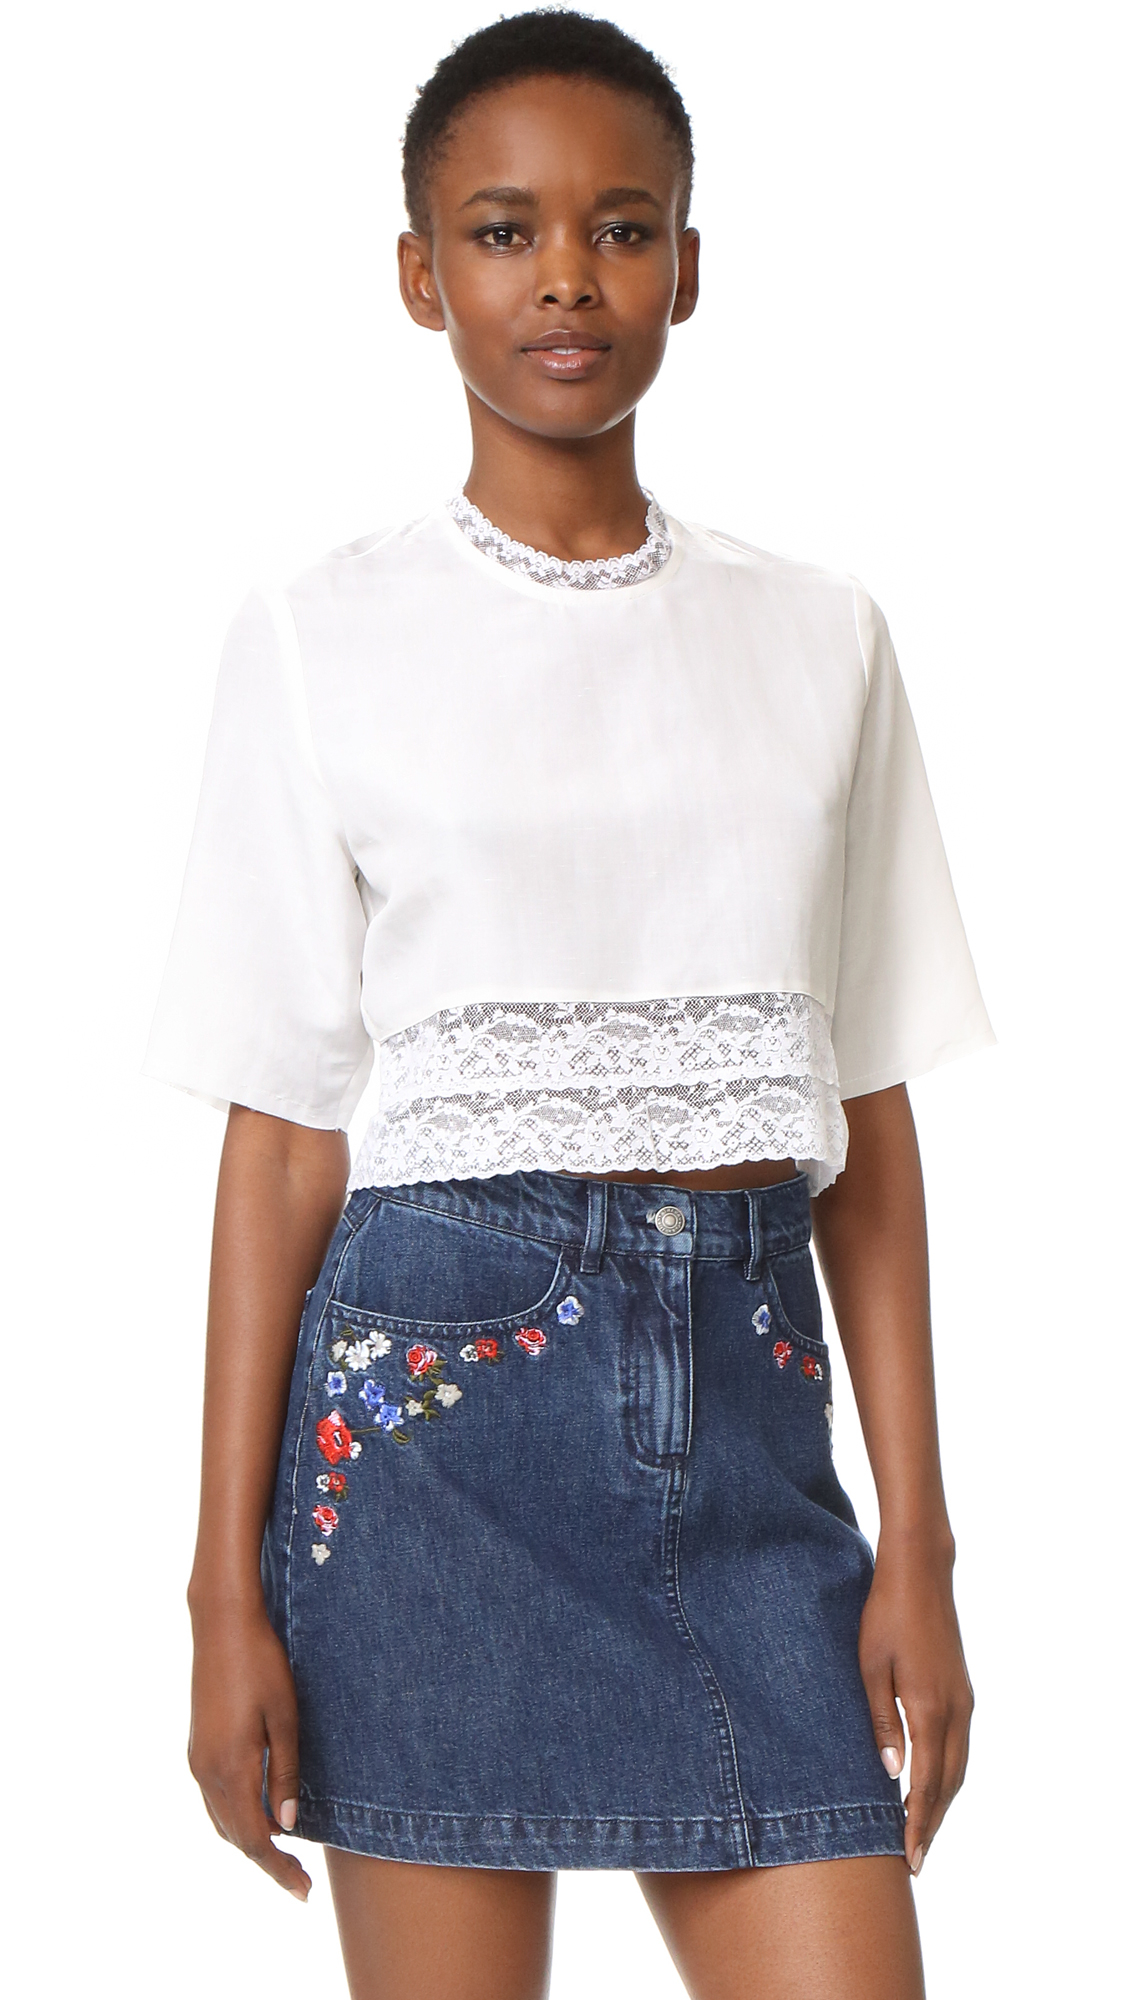 Matin French Lace Cropped Blouse in White